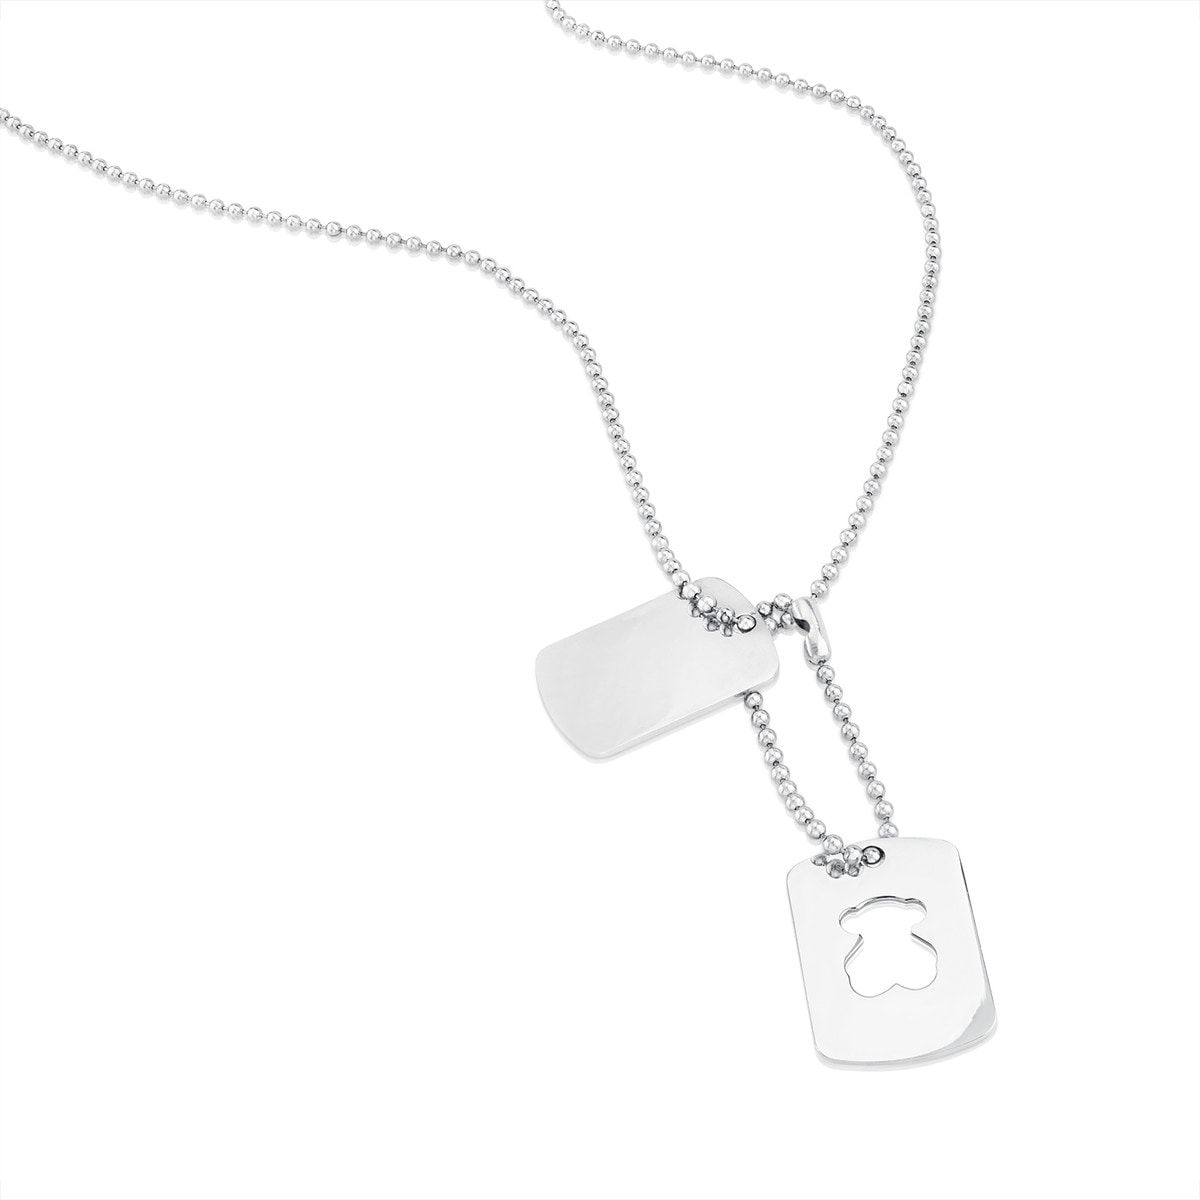 Stainless Steel TOUS Acero Necklace